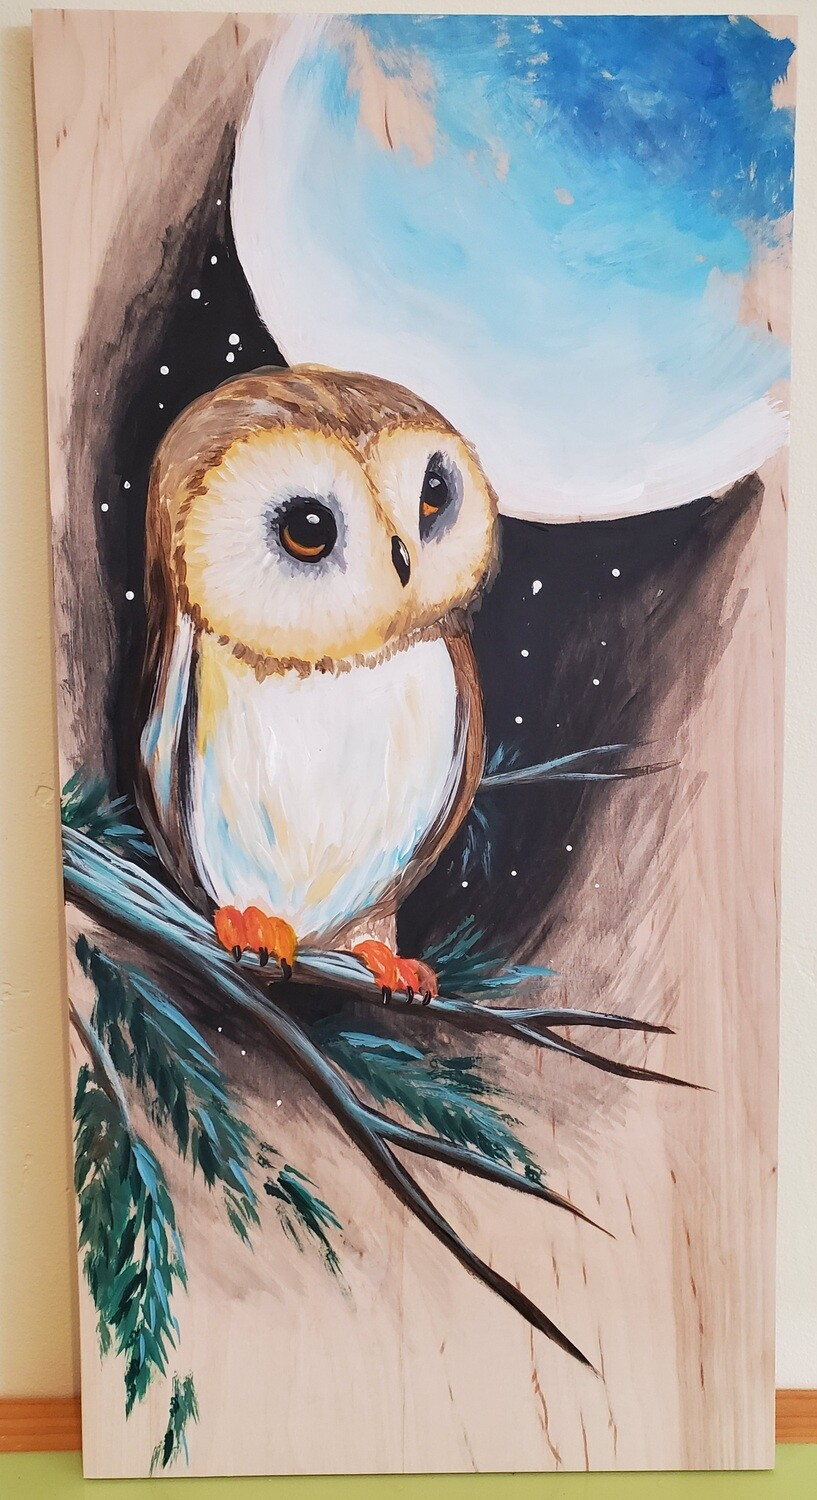 In Studio or Take Home kit - Owl painted on wood